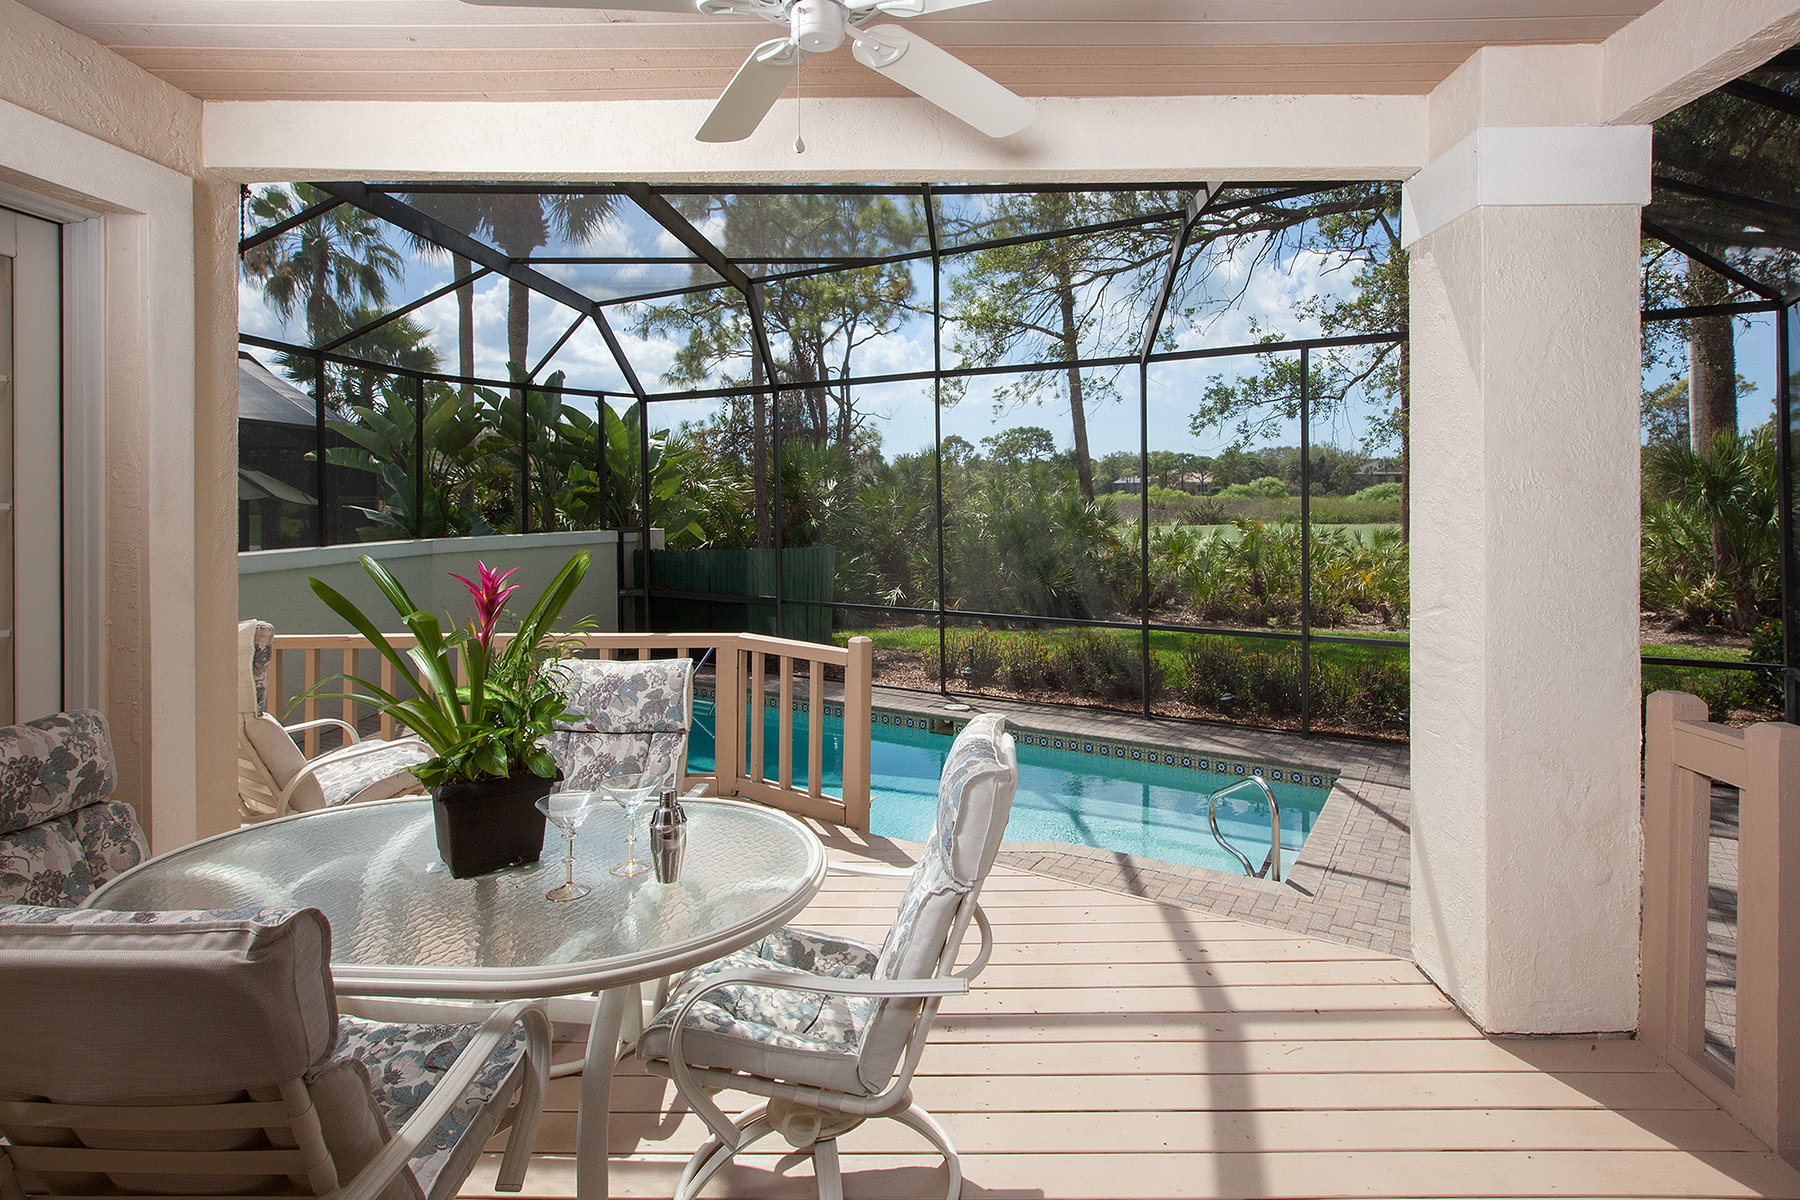 Single Family Home for Sale at 27100 Enclave Dr , Bonita Springs, FL 34134 27100 Enclave Dr, Bonita Springs, Florida 34134 United States